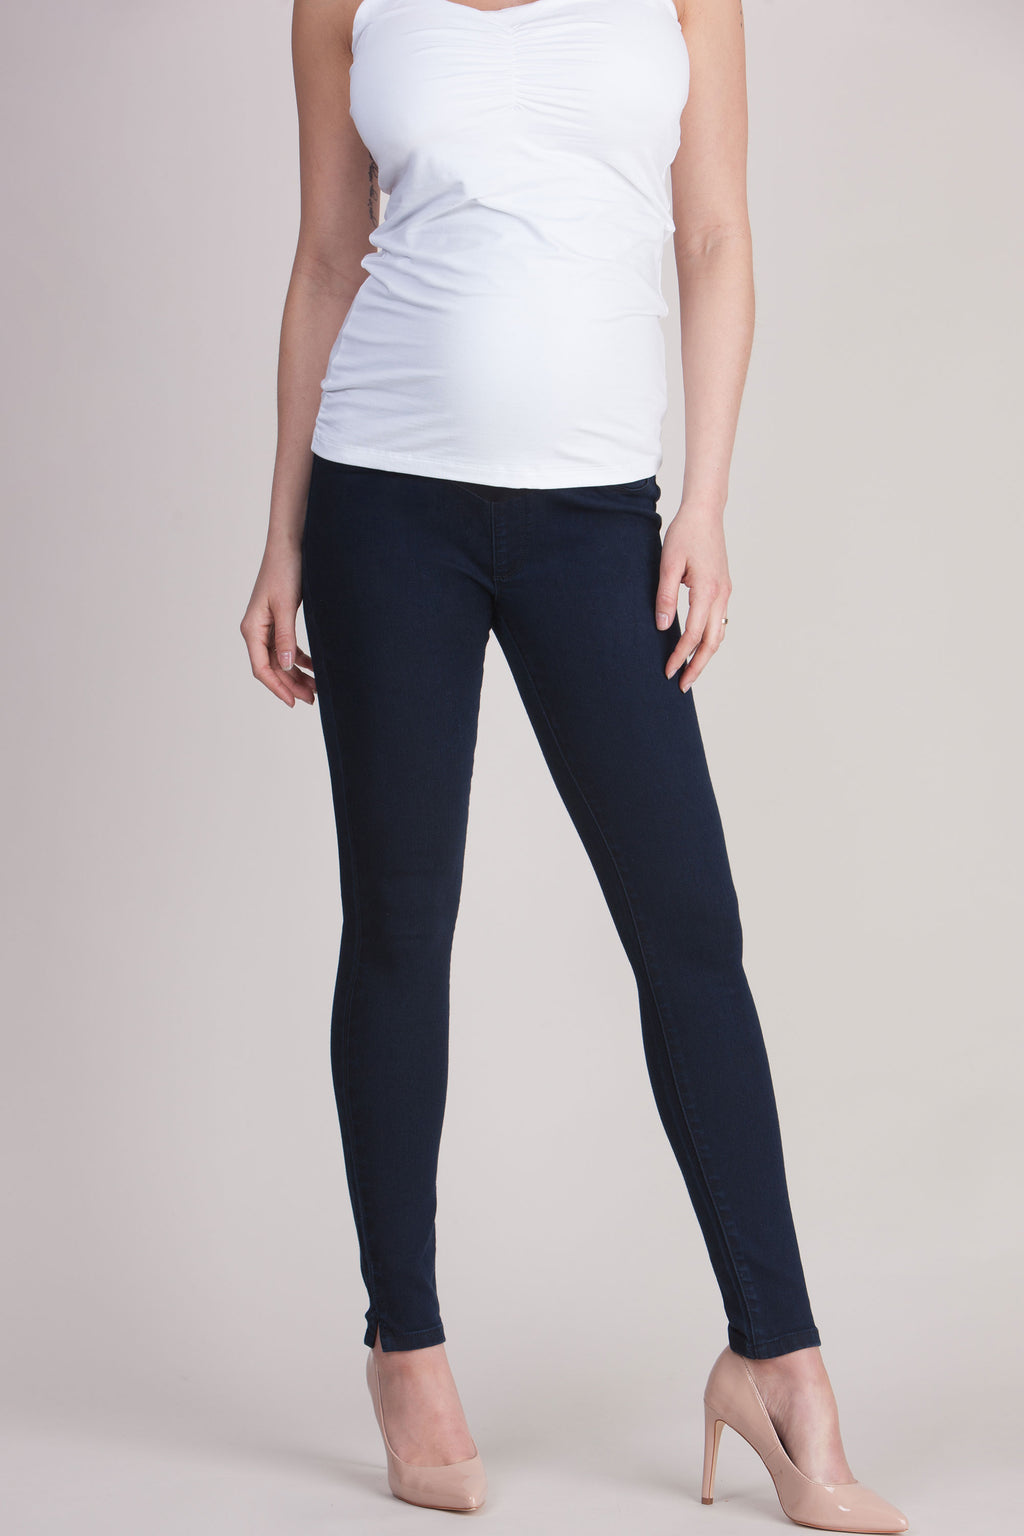 Seraphine Elis Skinny Over Bump Maternity Jeans